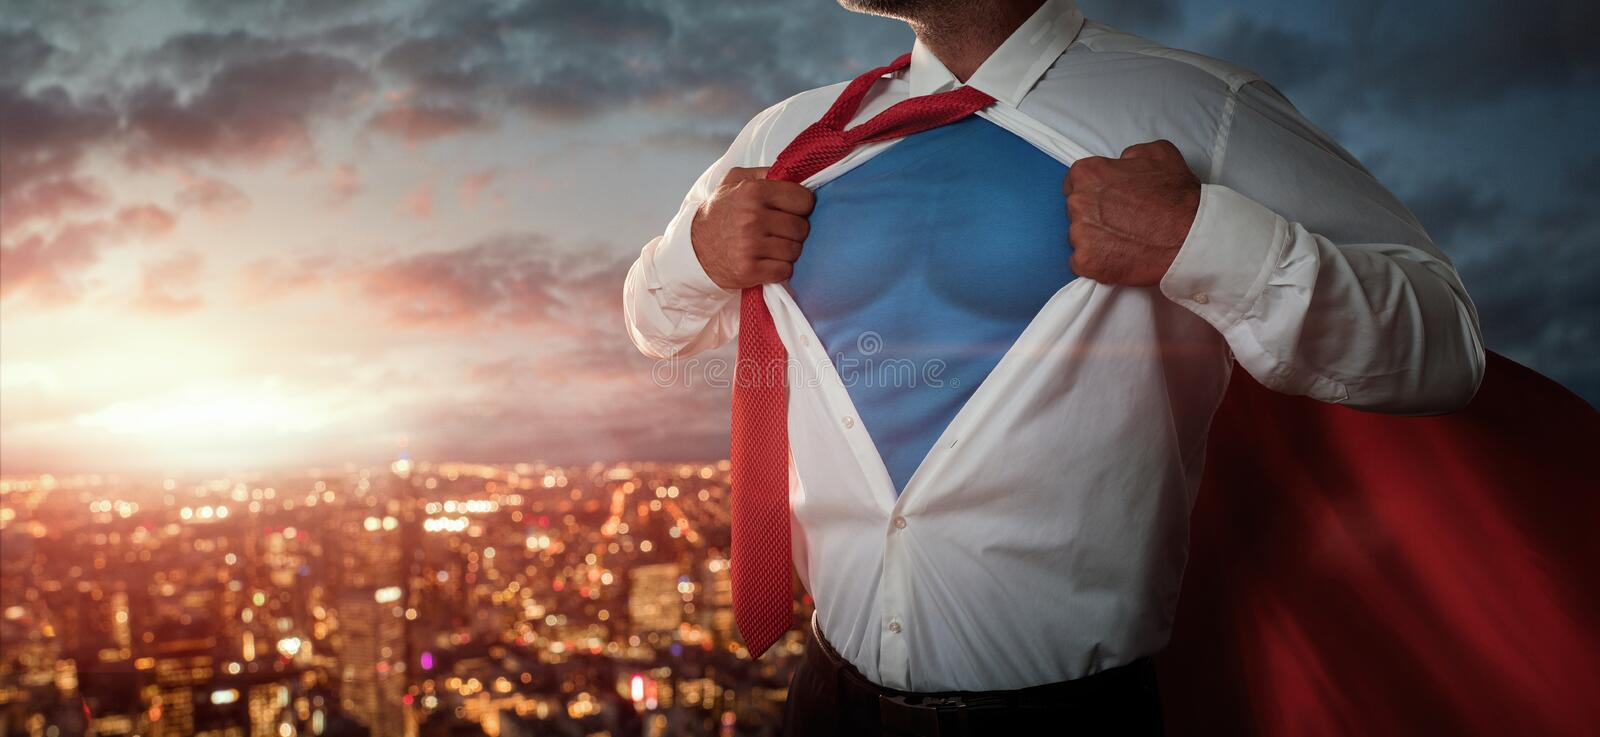 Young businessman acting like a superhero royalty free stock photography